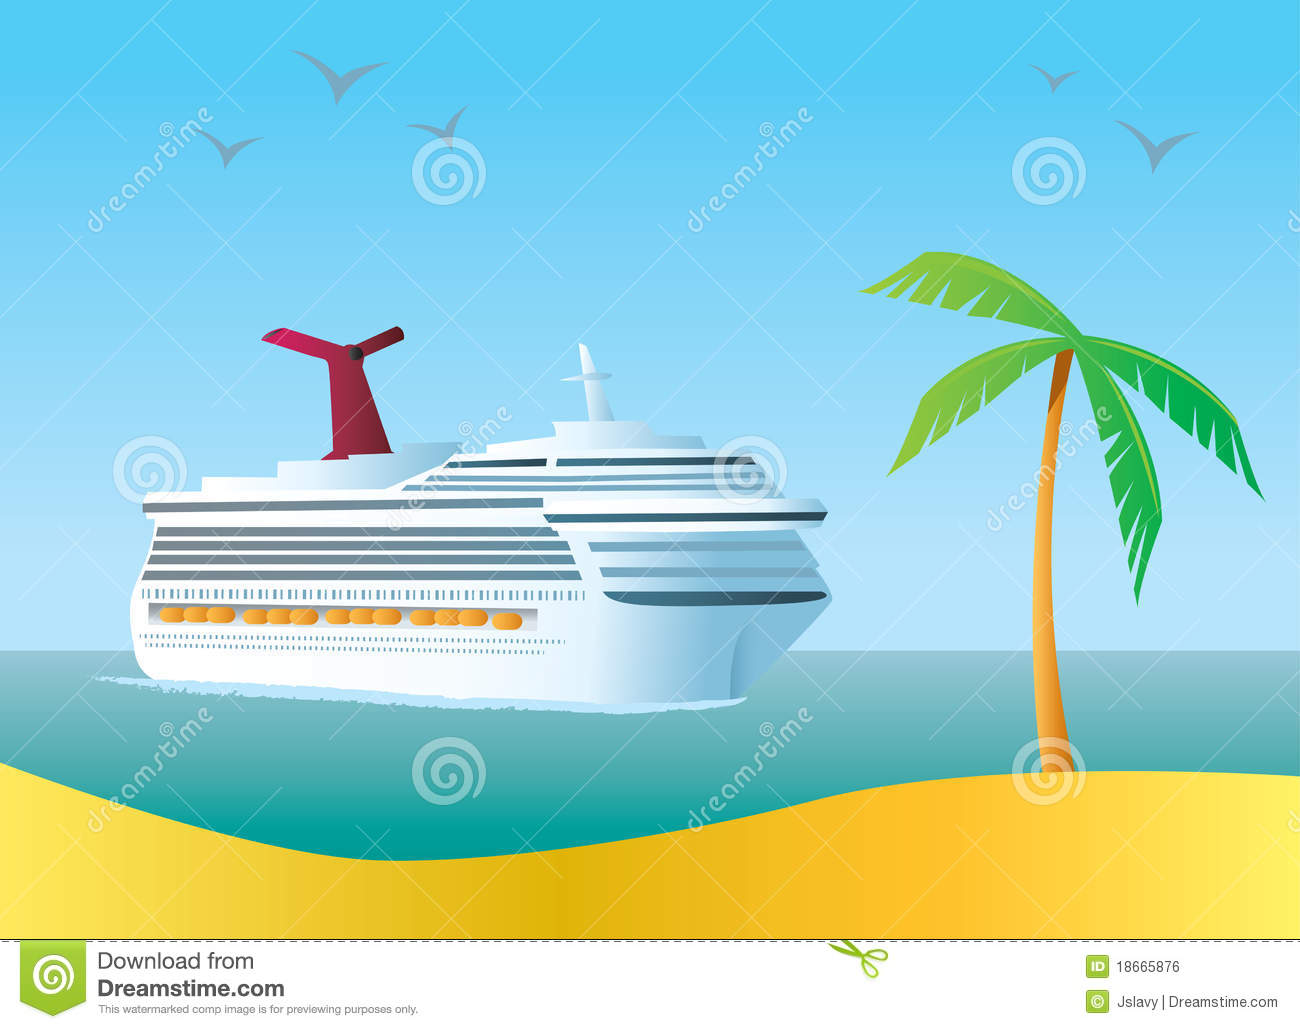 Cartoon Cruise Ships cartoon cruise ships cruise ship - clipart kid